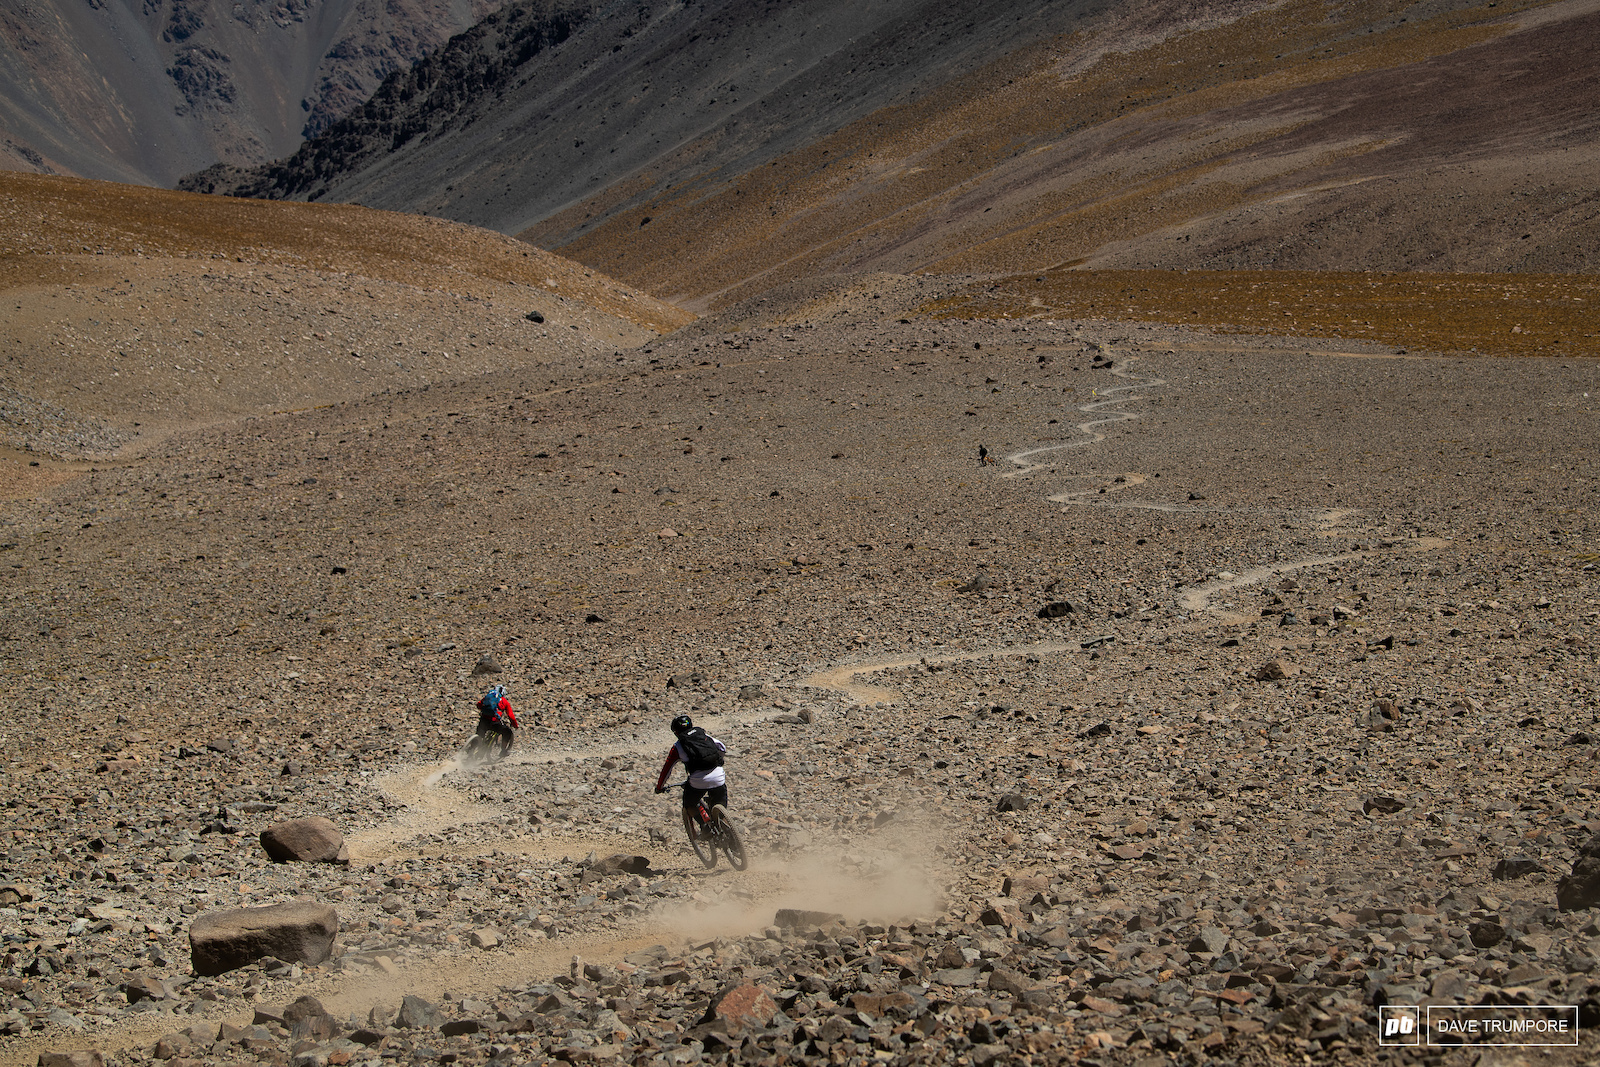 a few months ago this trail didn t even exist. No riders can drop in from the border with Argentina and ride almost 10 kilometers down into Chile.